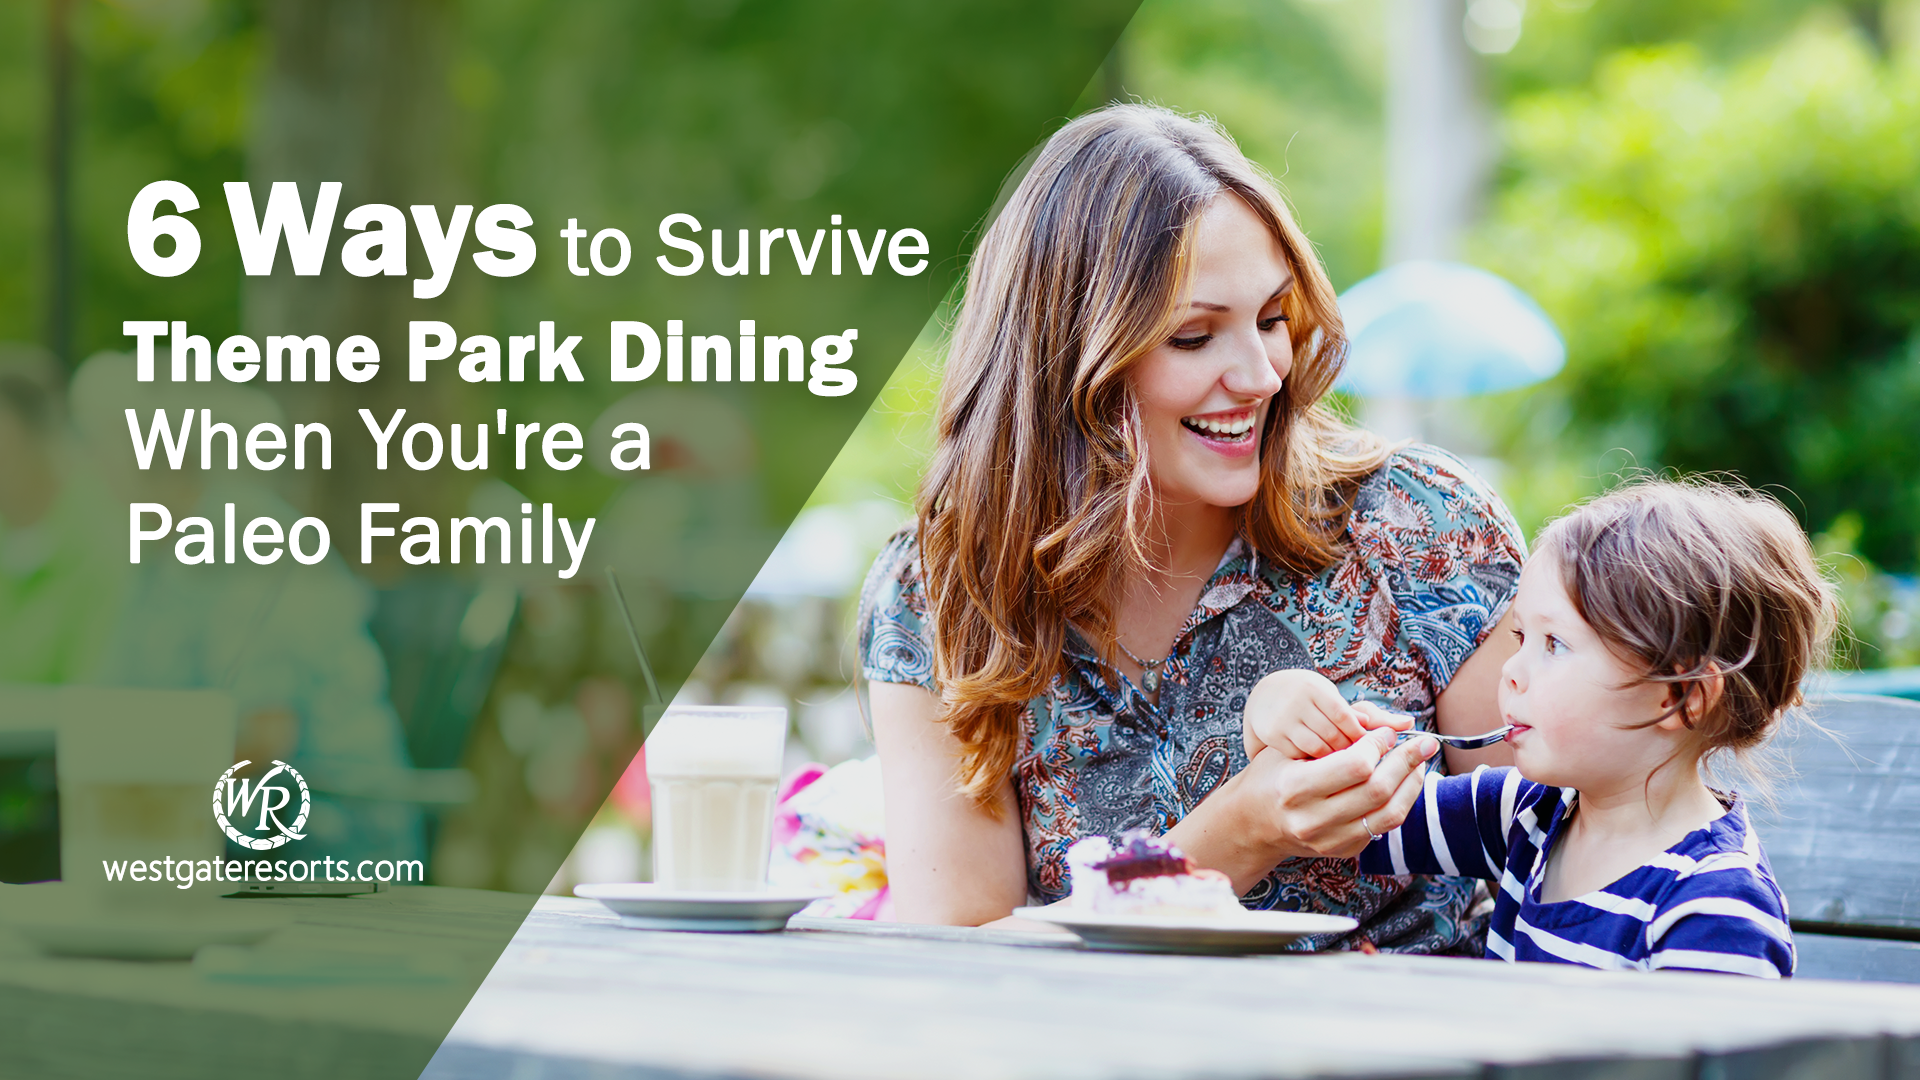 6 Ways to Survive Theme Park Dining When You're a Paleo Family | Traveling Paleo | Westgate Resorts